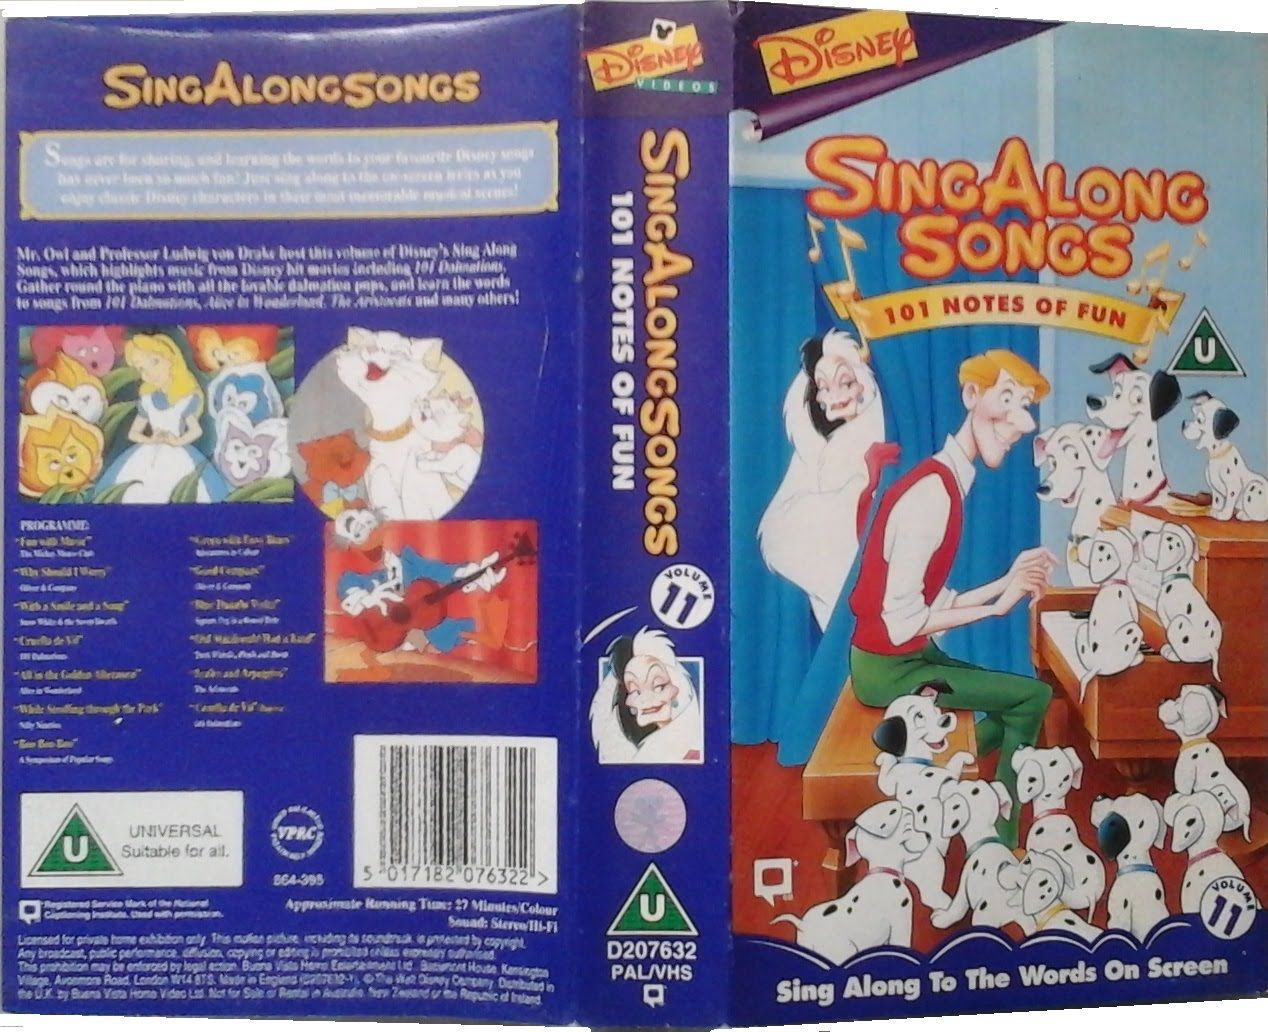 Disney Sing Along Songs 101 Notes Of Fun Vhs Front And Back Cover Uk Sing Along Songs Songs Singing